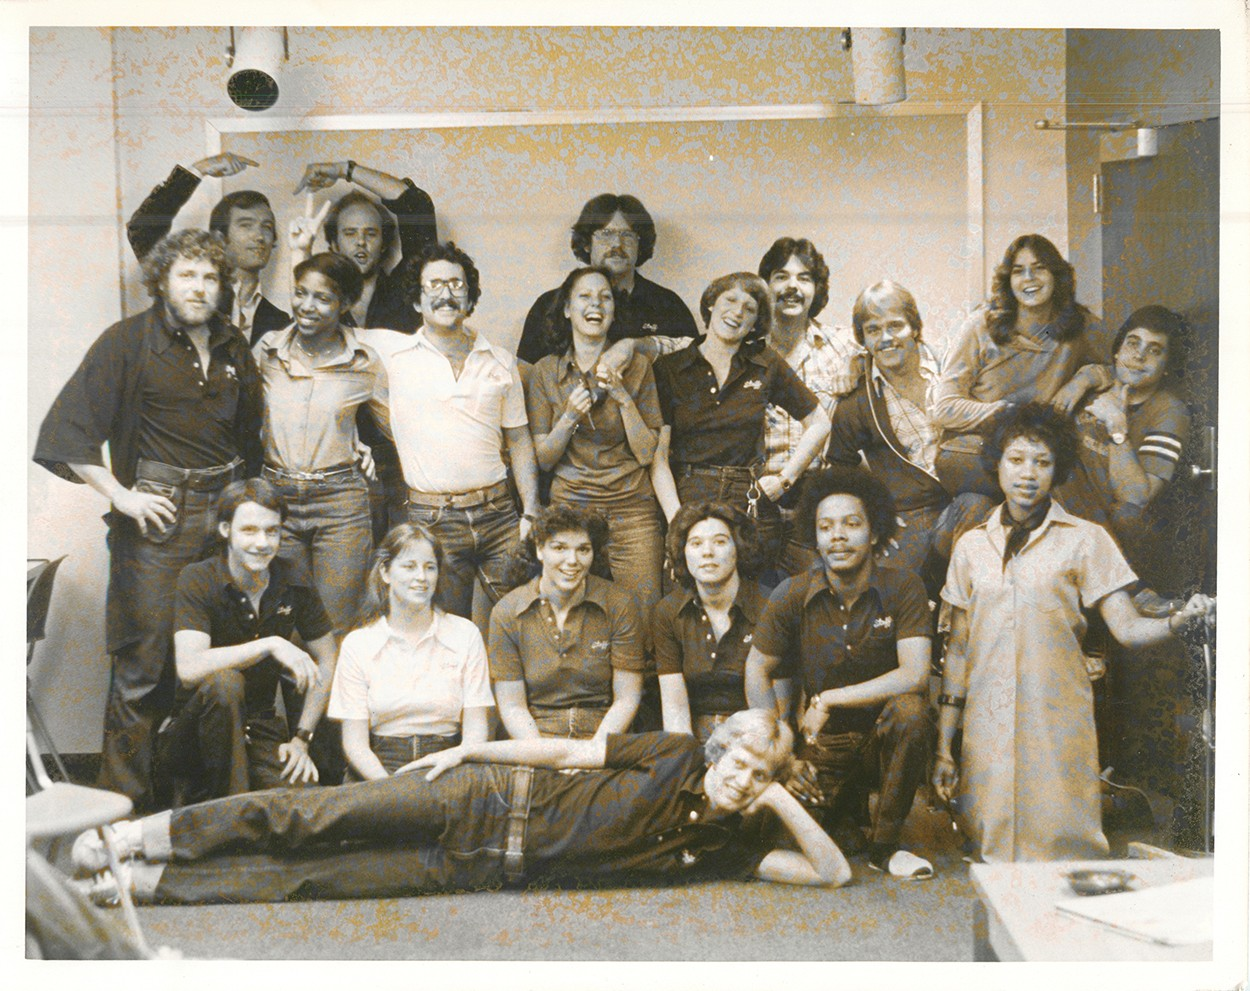 A group photos of Sander Hall residents from the 1970s